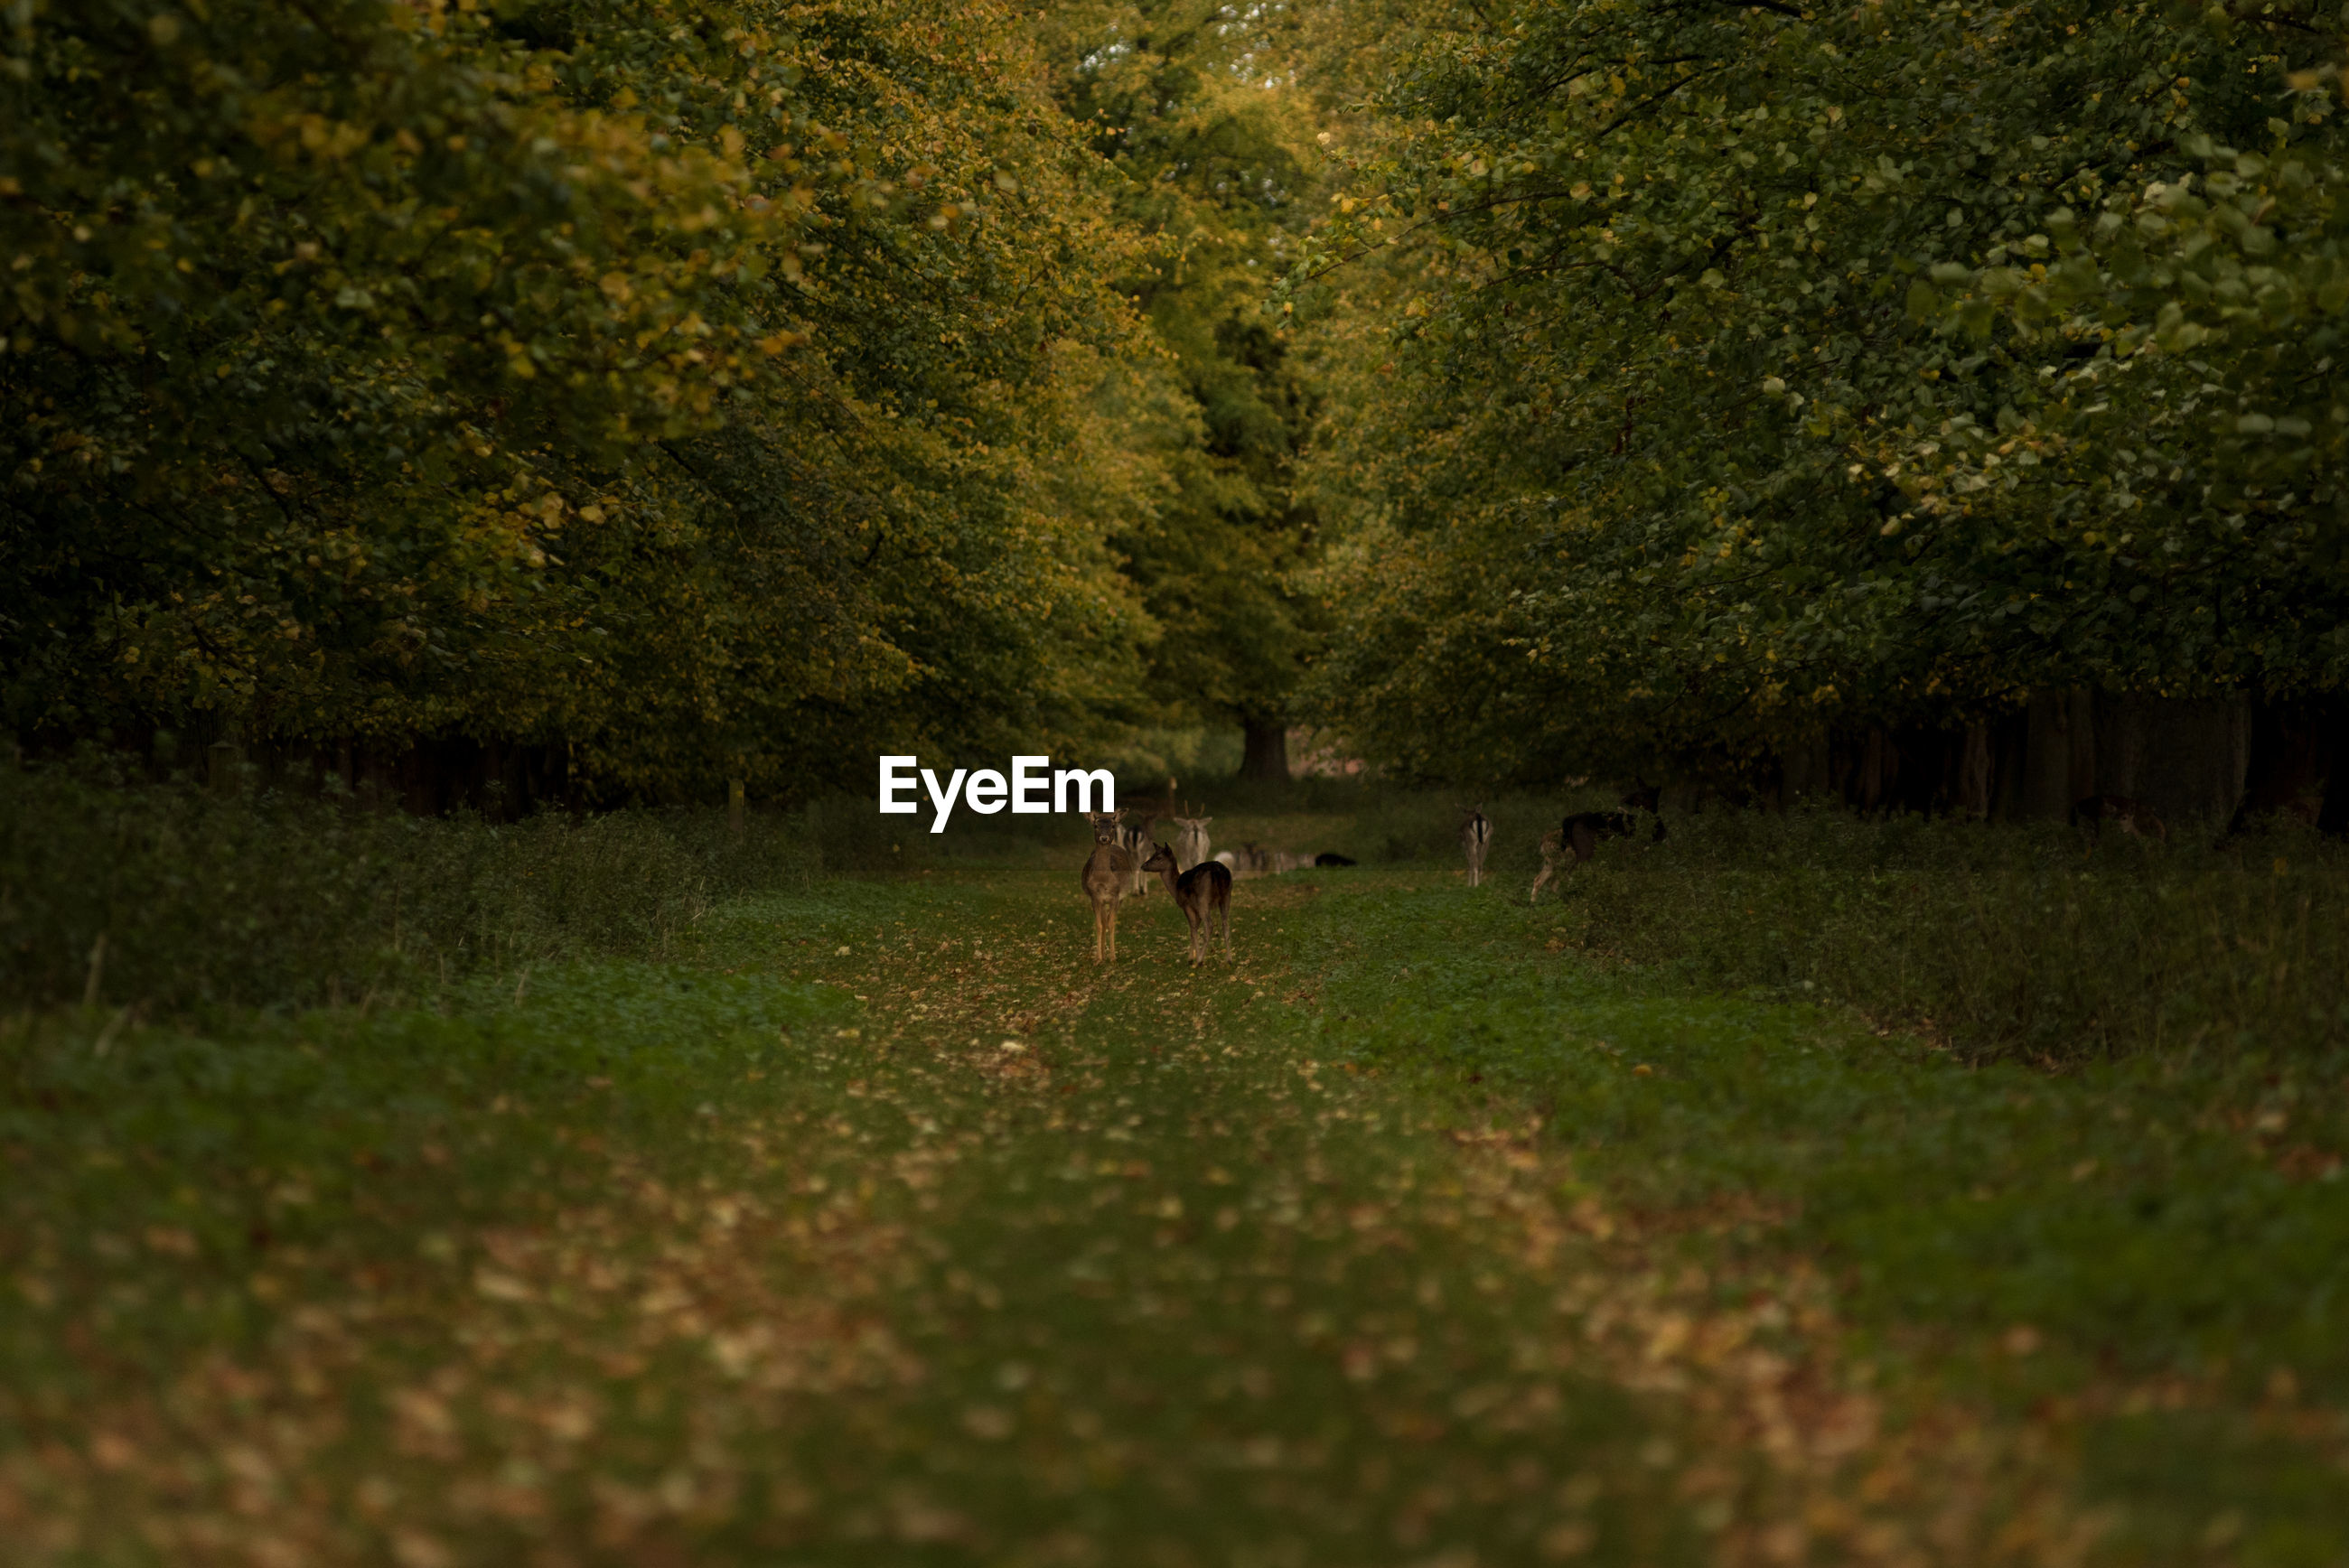 Deer standing on grass amidst trees in forest